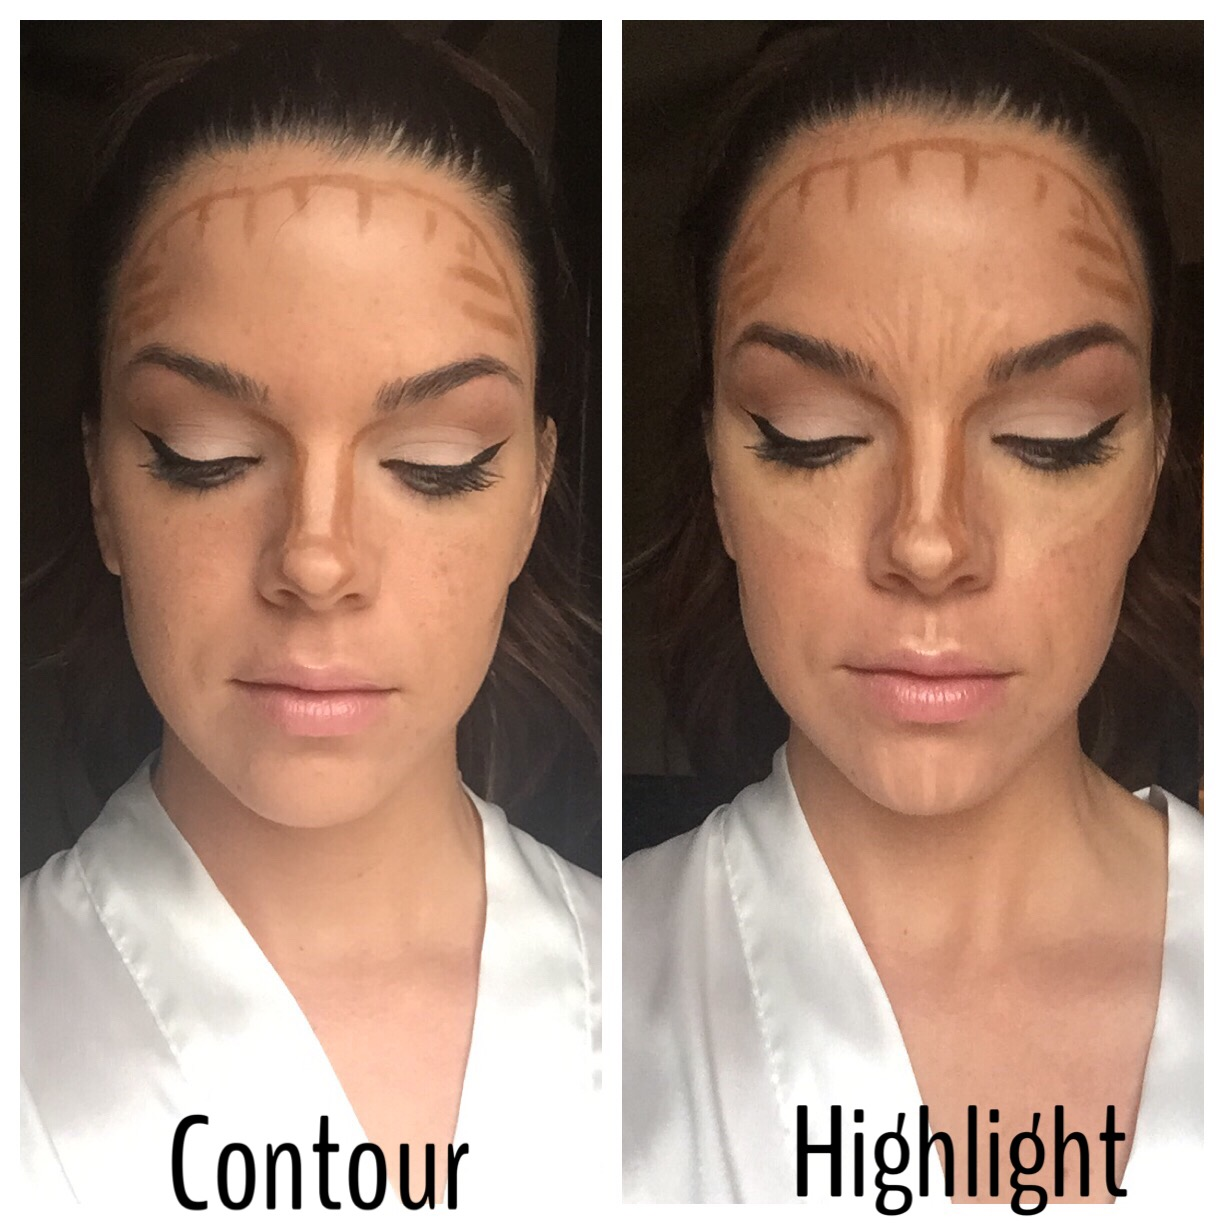 Contour & Highlight-Step by Step Guide